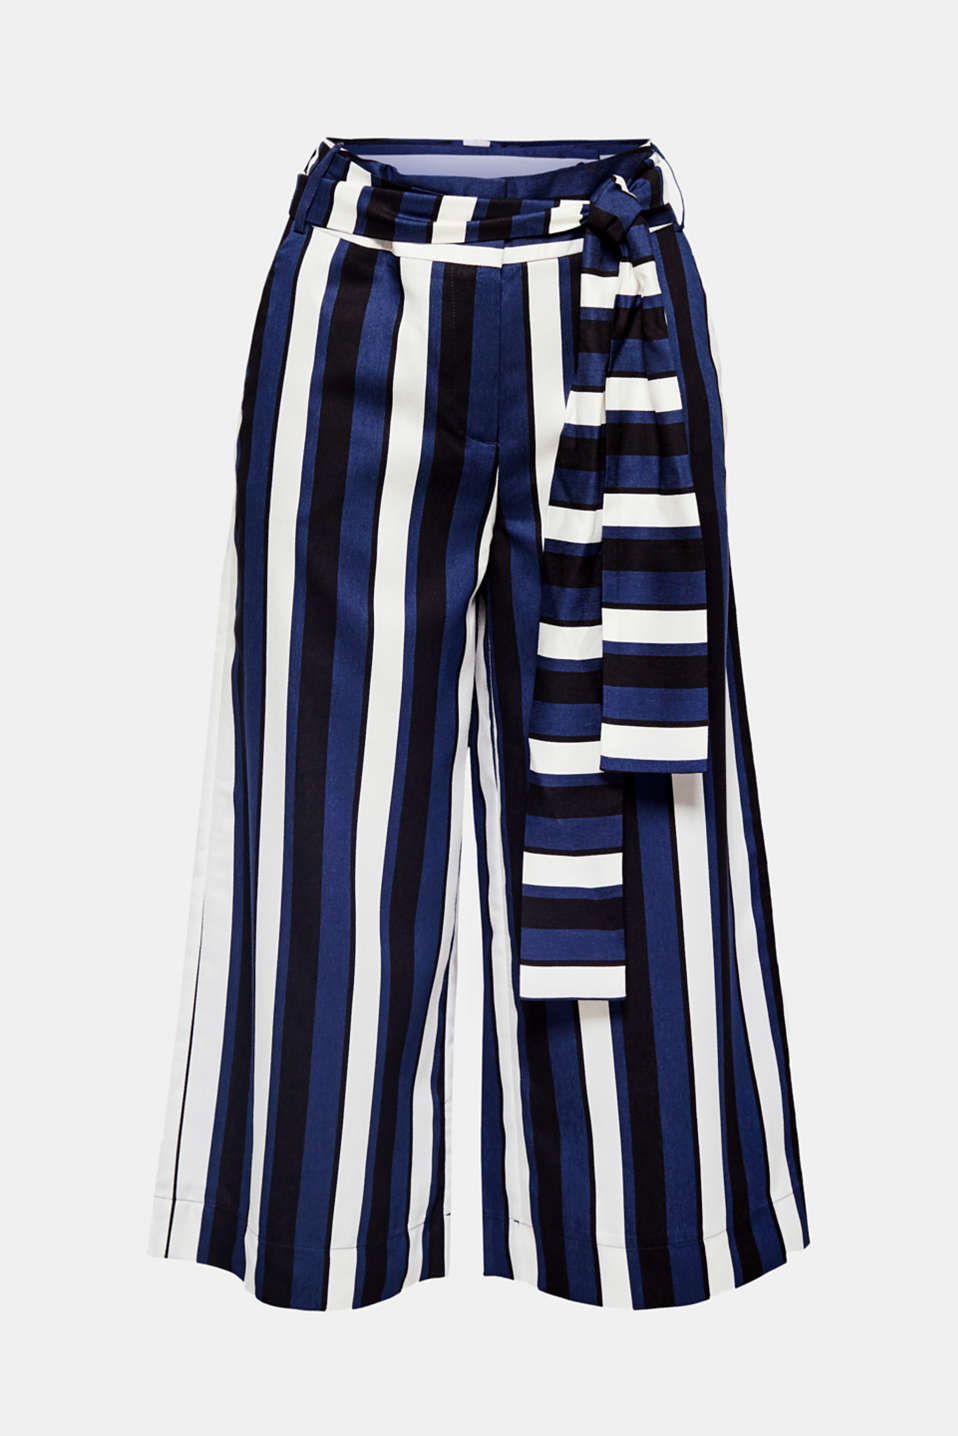 Vertical block stripes, wide tie belt and subtle matte-shiny effects make these wide leg culottes a stylish summer piece!